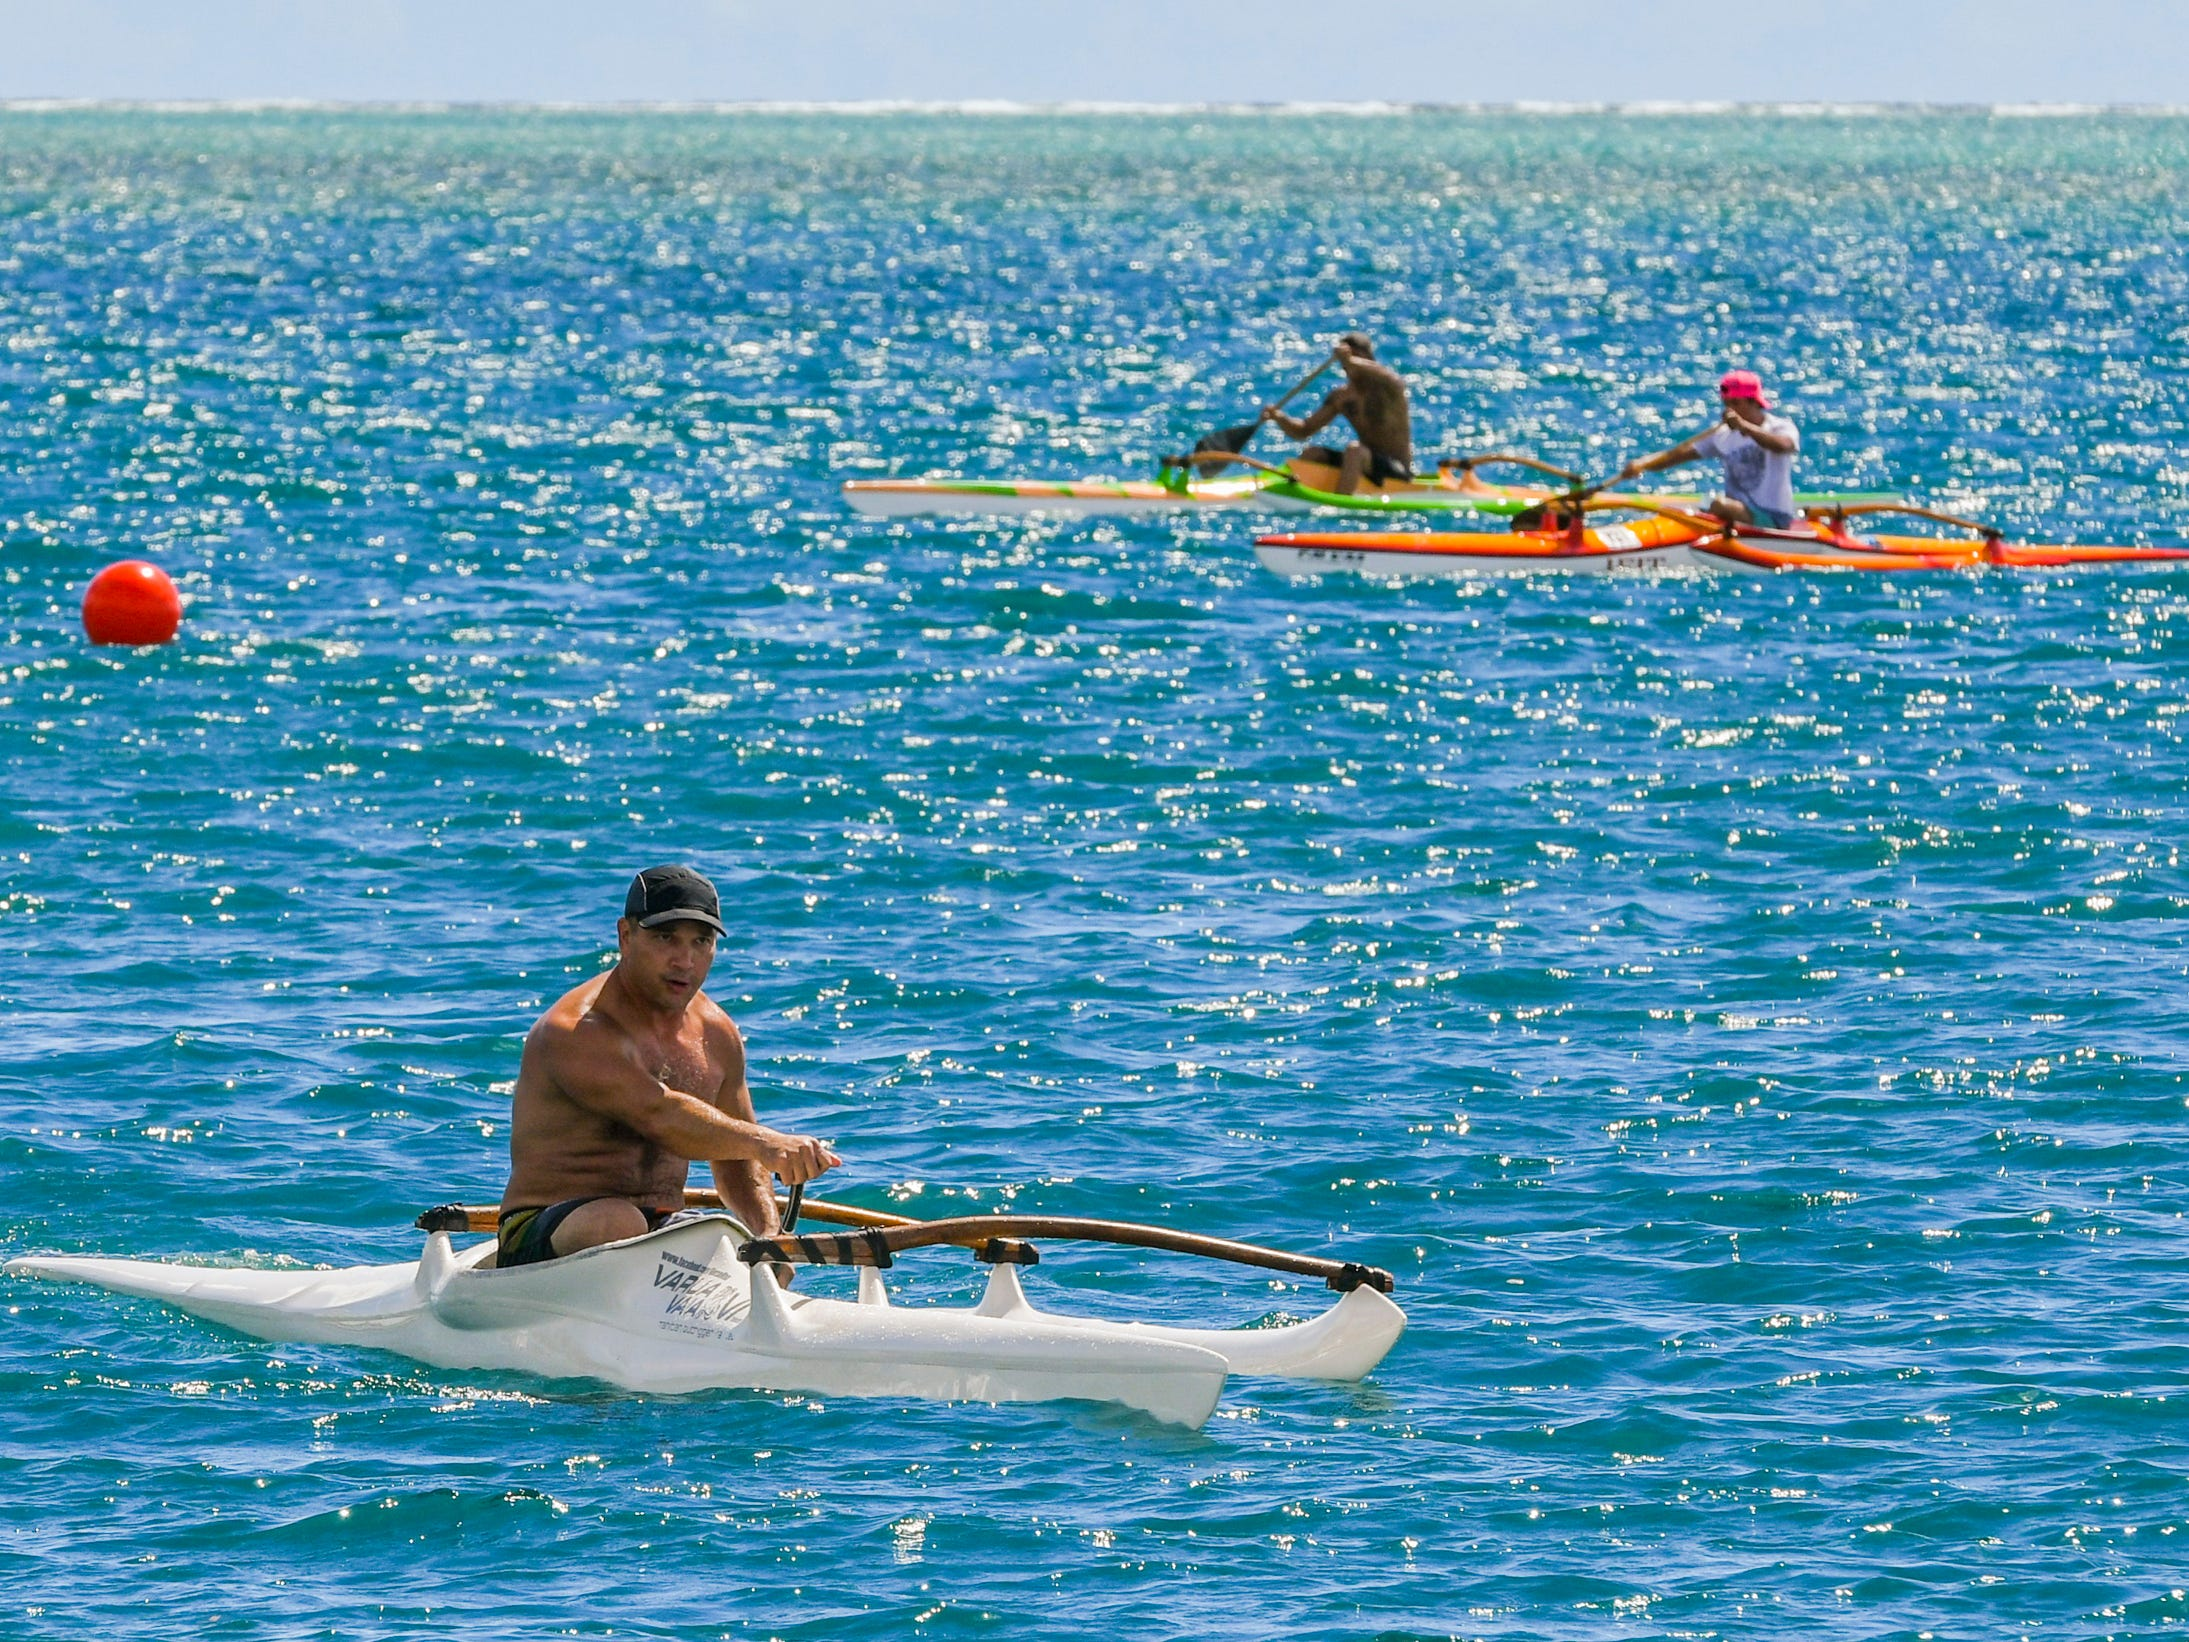 Paddler Sith Khamvongsa, front, enjoys a comfortable lead during his participation in a Rebellion division canoe race at the annual Malesso Fiestan Tasi on Saturday, Dec. 1, 2018 at the Malesso Veteran Sons & Daughters Pier Park. The village festival is slated to continue on Sunday, Dec. 2, with plans of a spearfishing competition, personal watercraft racing, live entertainment and an evening fireworks show being held.